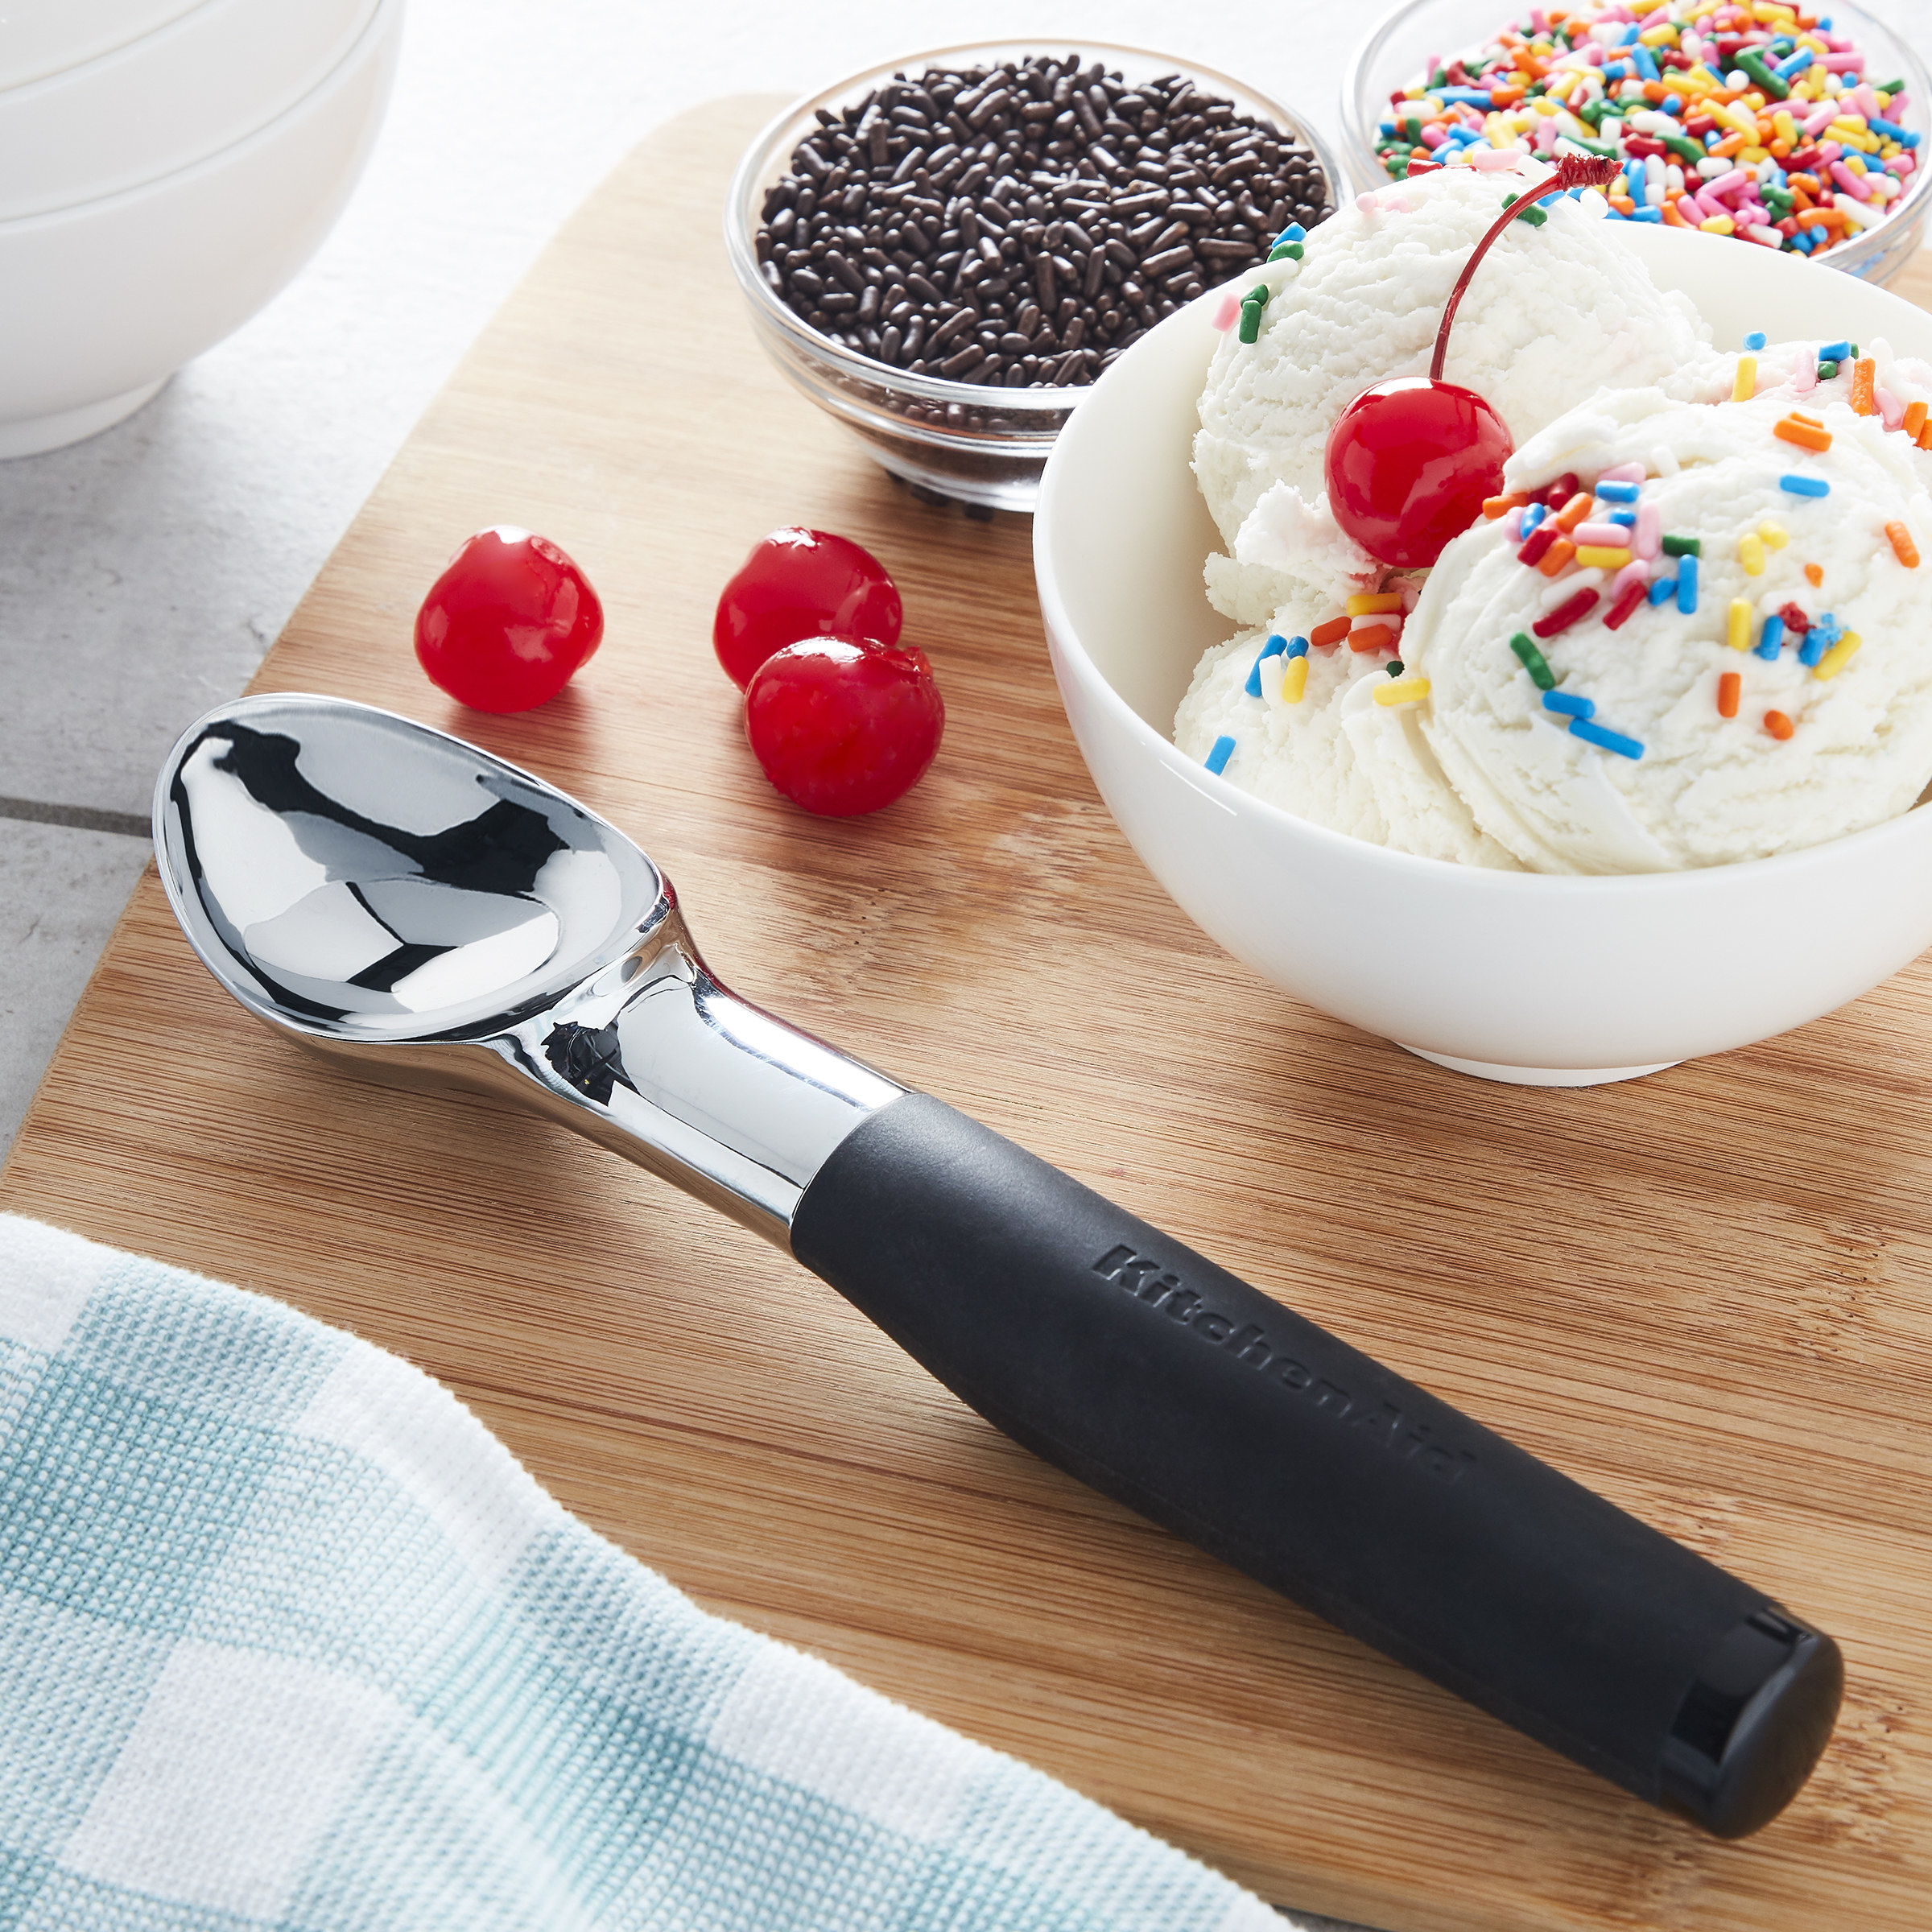 The ice cream scoop